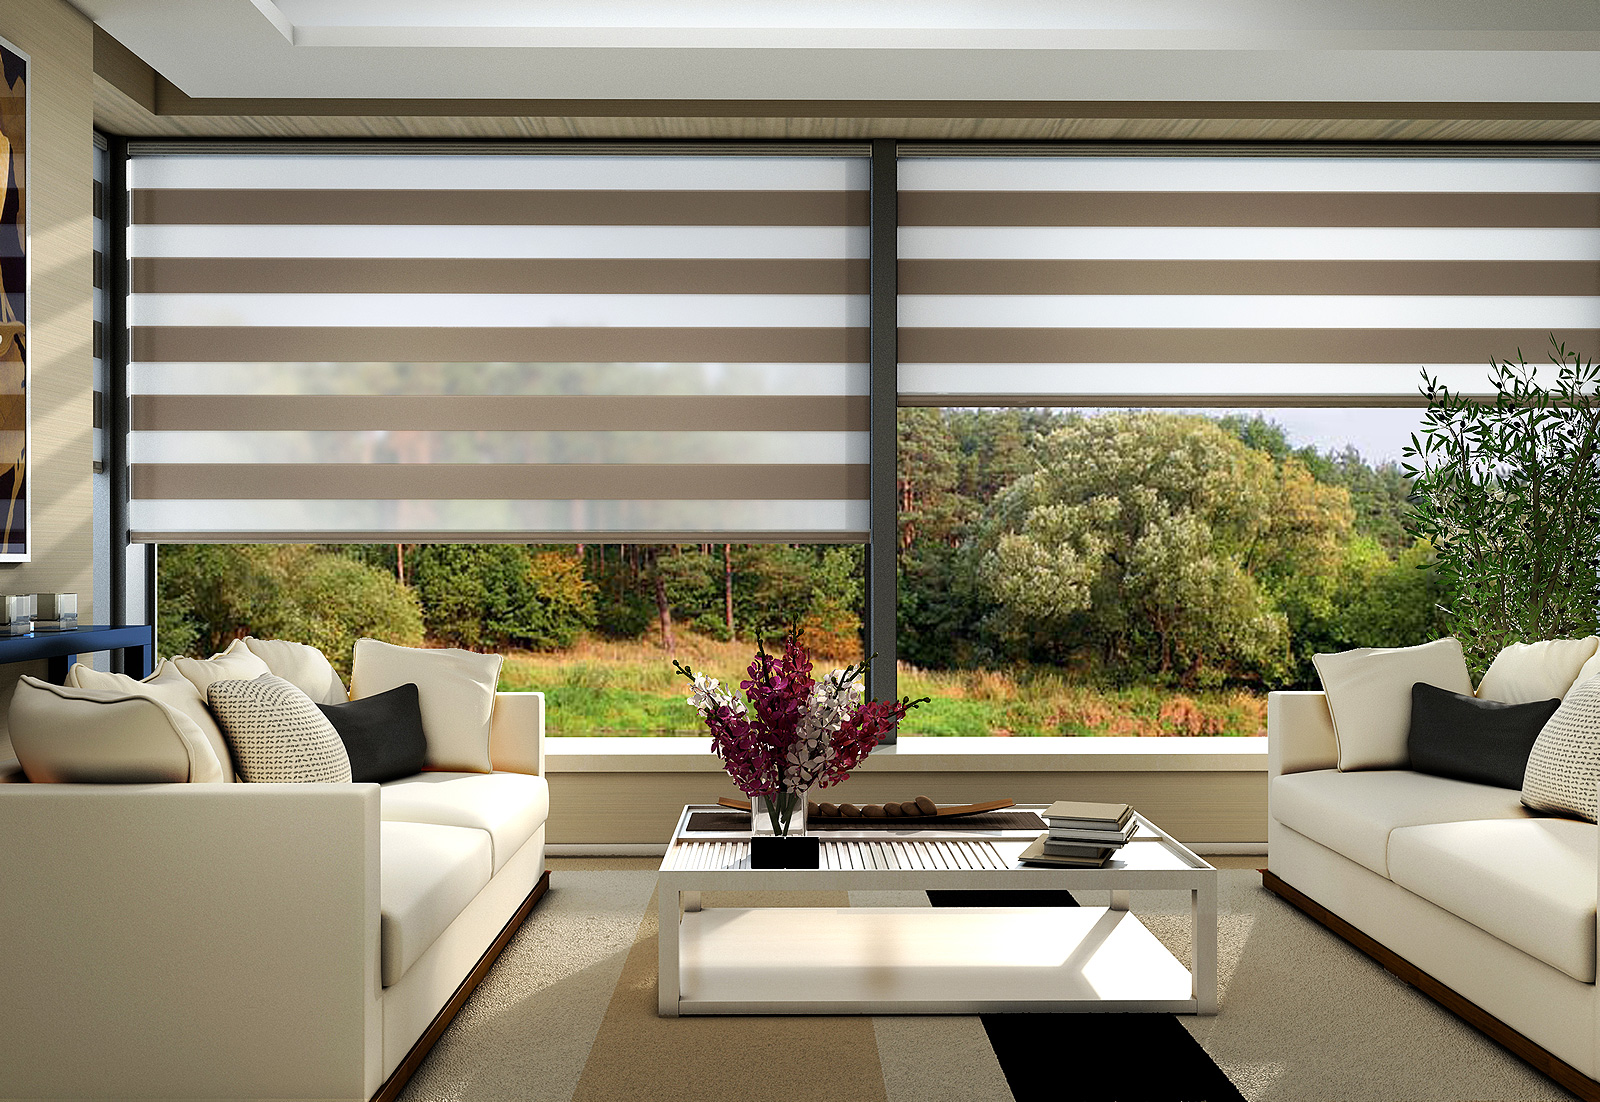 Fully Motorized Roller Blinds for your home!